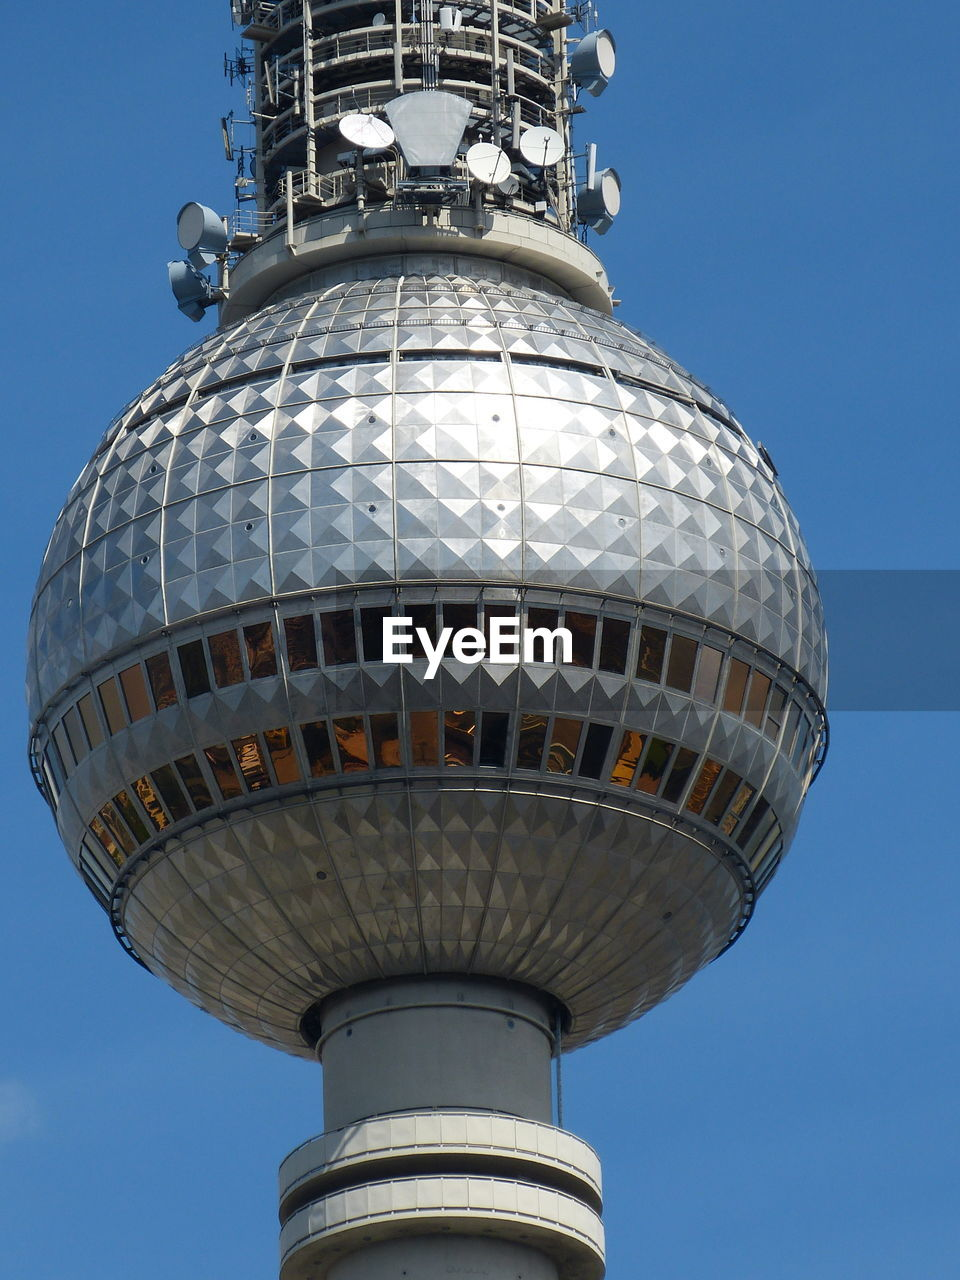 low angle view, sky, architecture, building exterior, nature, no people, tower, built structure, day, tall - high, clear sky, building, travel, tourism, city, sphere, blue, travel destinations, communication, outdoors, silver colored, global communications, spire